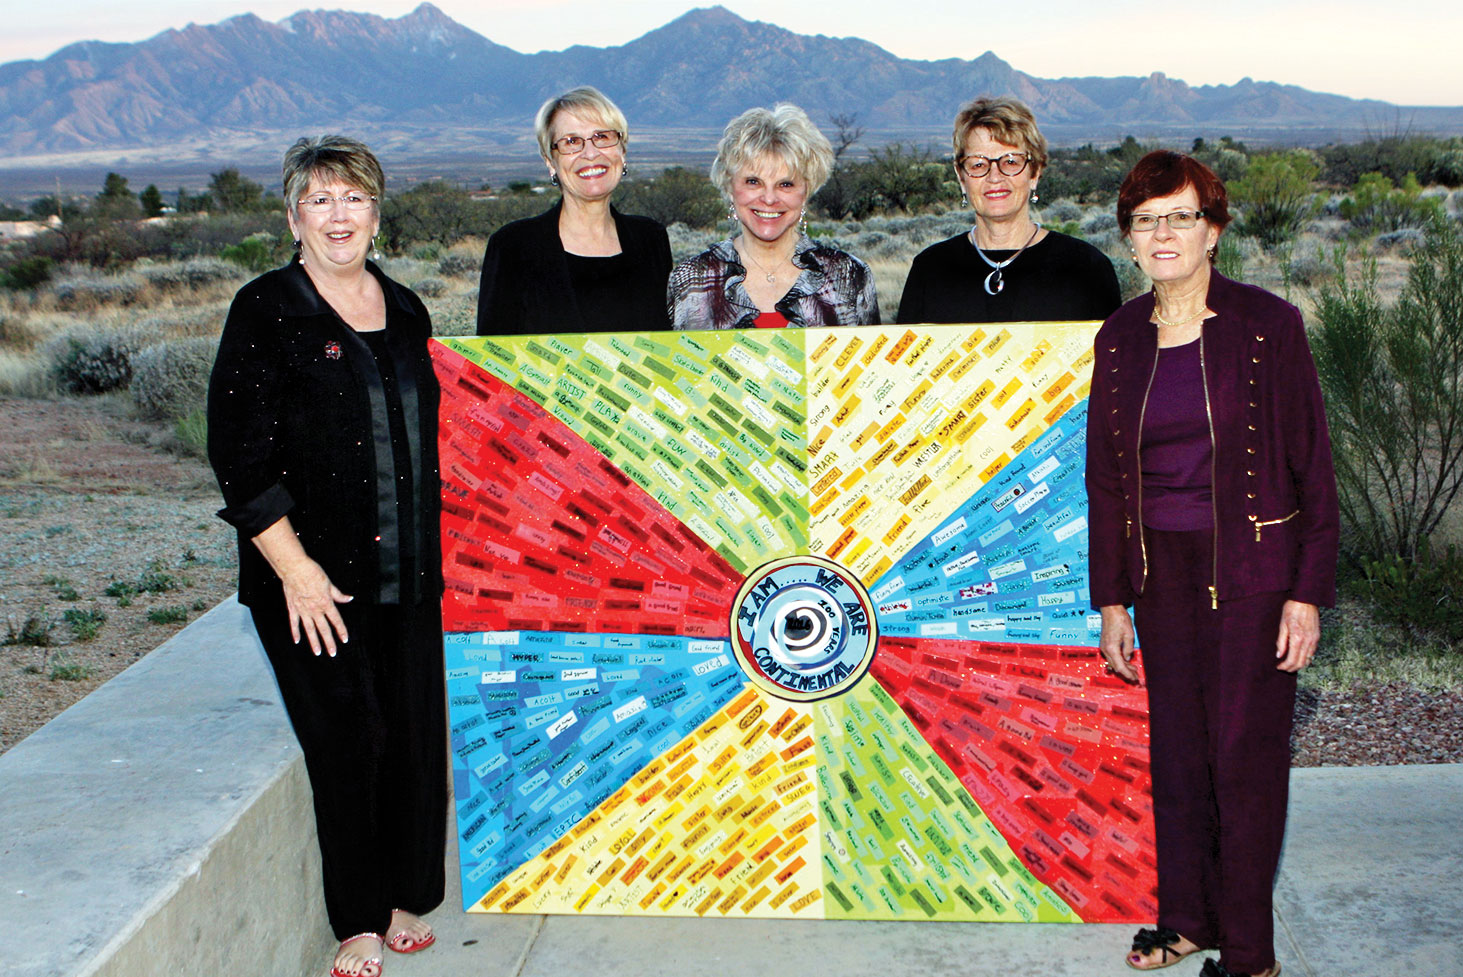 TWOQC members attending the Sweet Art Gala (left to right): Carol Mutter, Janice Pell, Nancy Wilson, Pat Neel and Peggy McGee; photo by Mike Turner